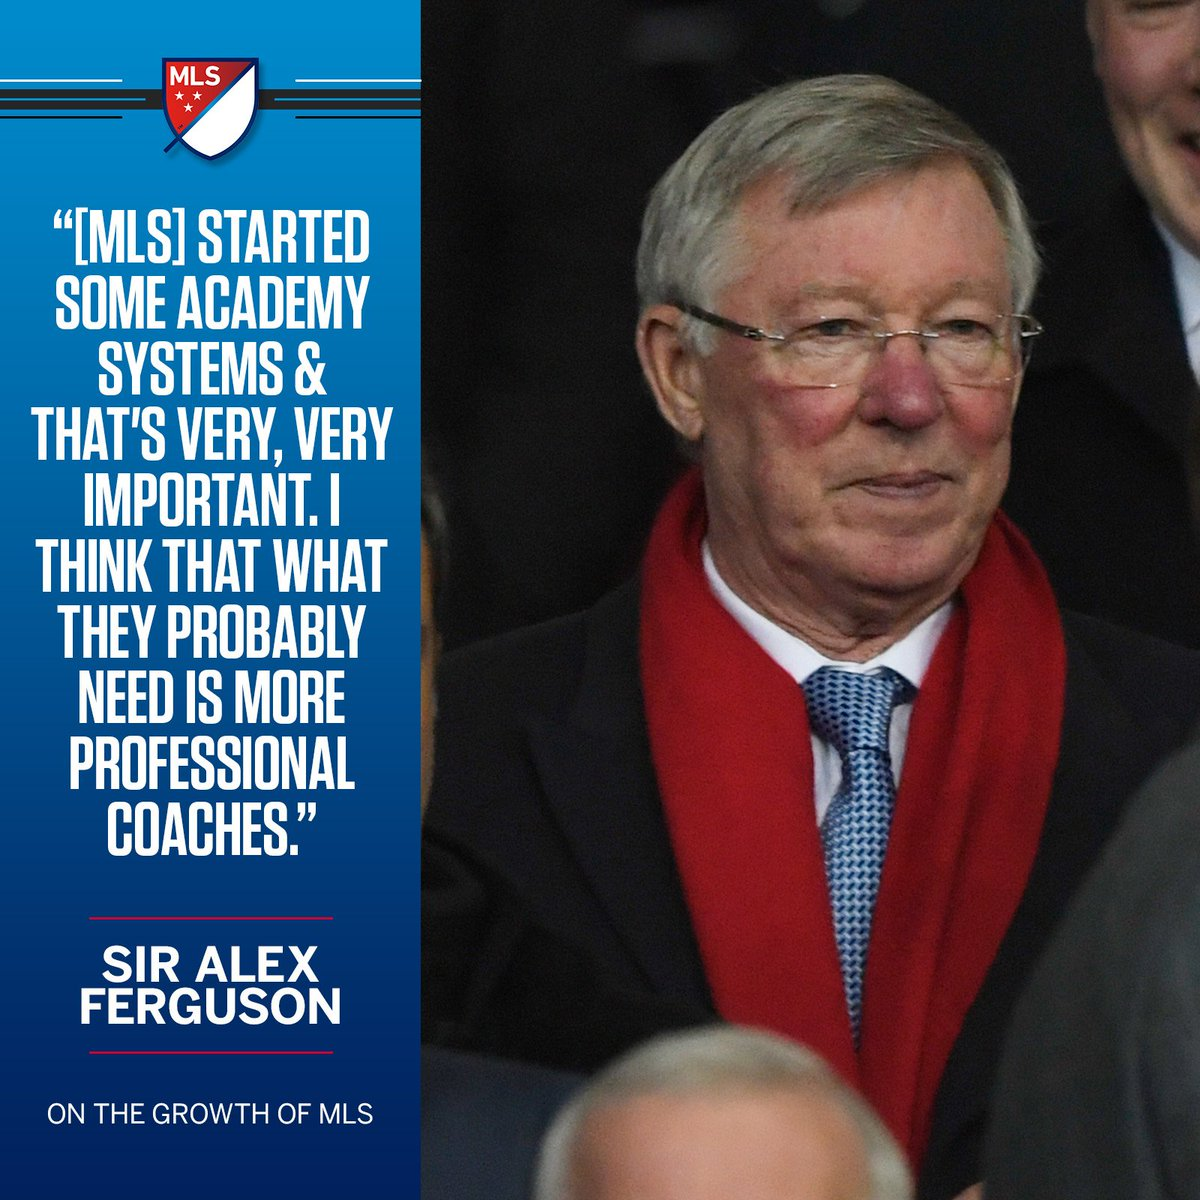 The quality of MLS is 'definitely improving,' according to Sir Alex Fe...